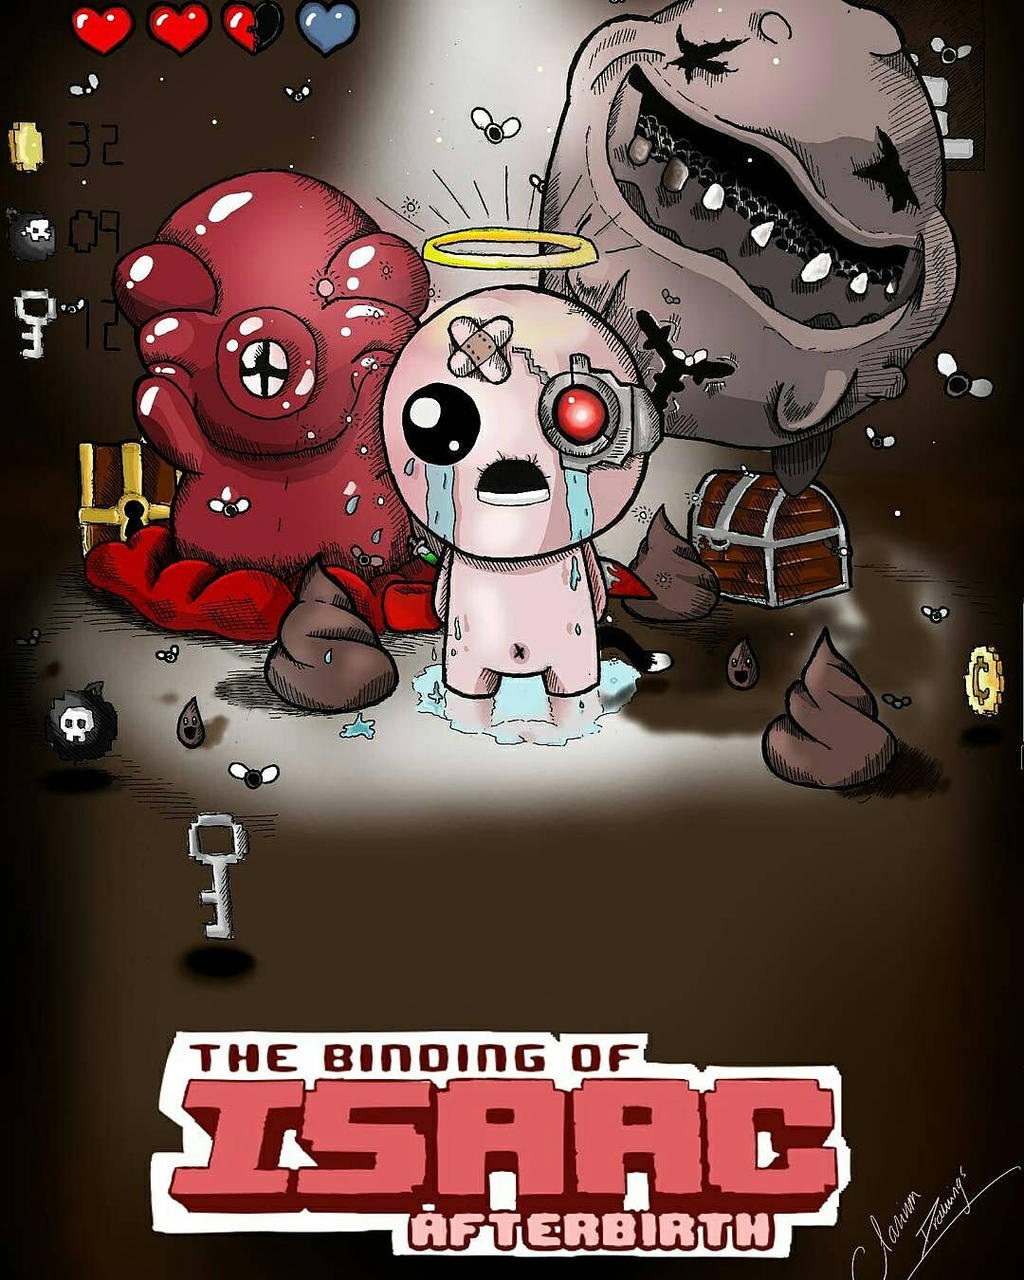 THE BINDING OF ISAAC AFTERBIRTH FANART By ClariumDraws On